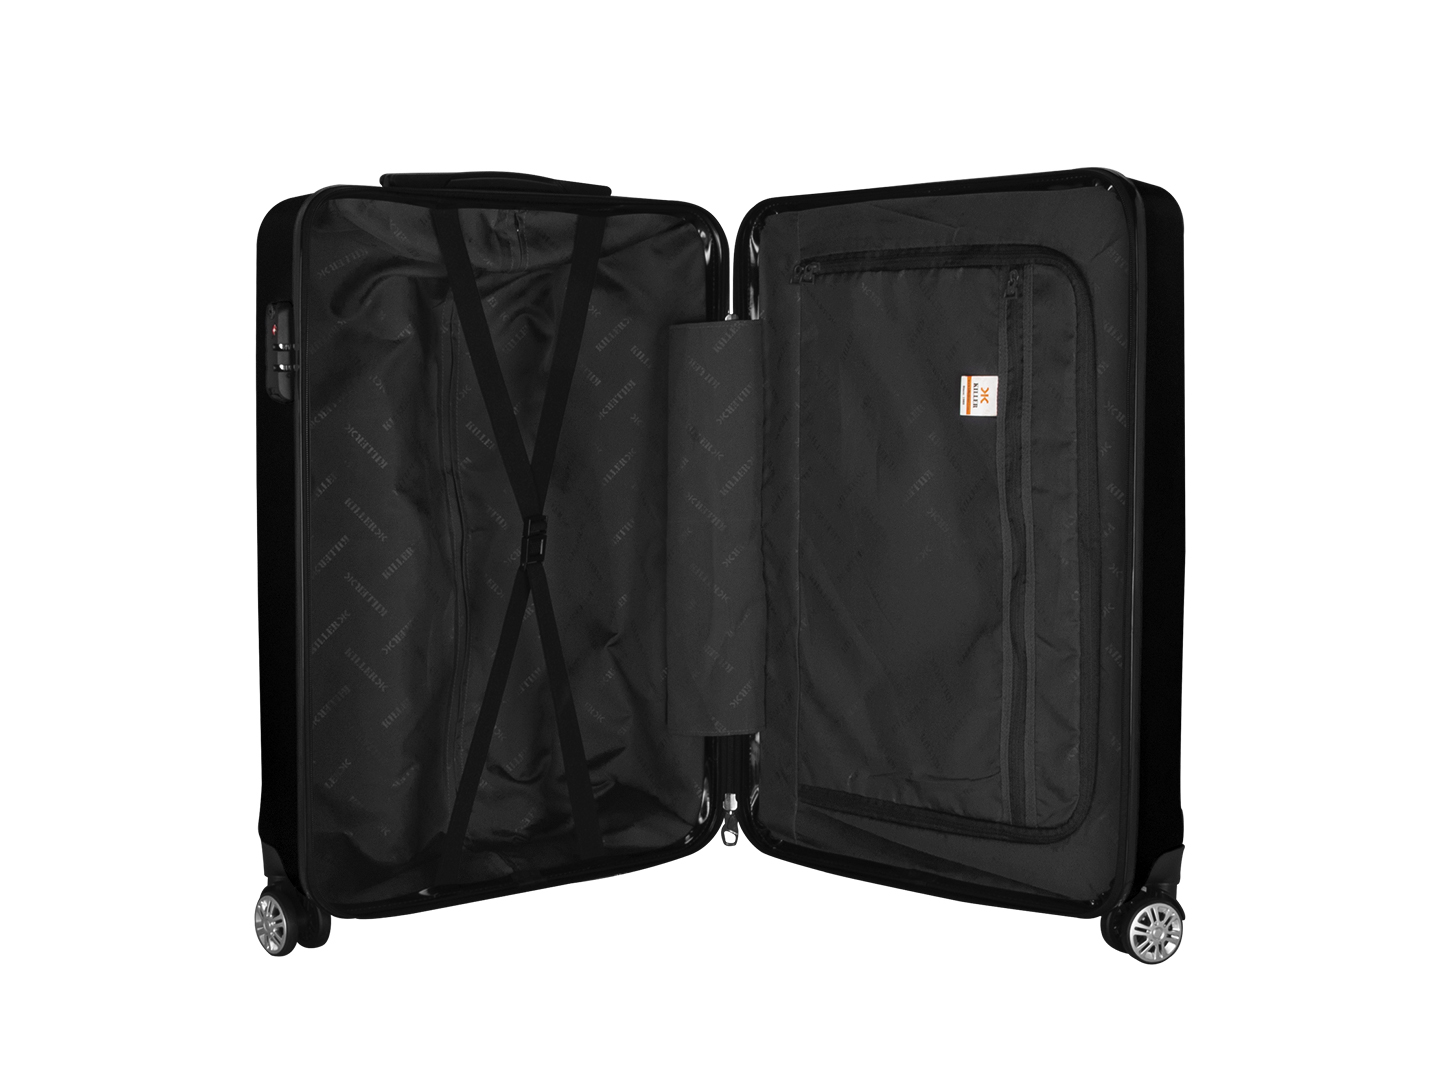 Hilton Polycarbonate (20 inches) Black Trolley Suitcase